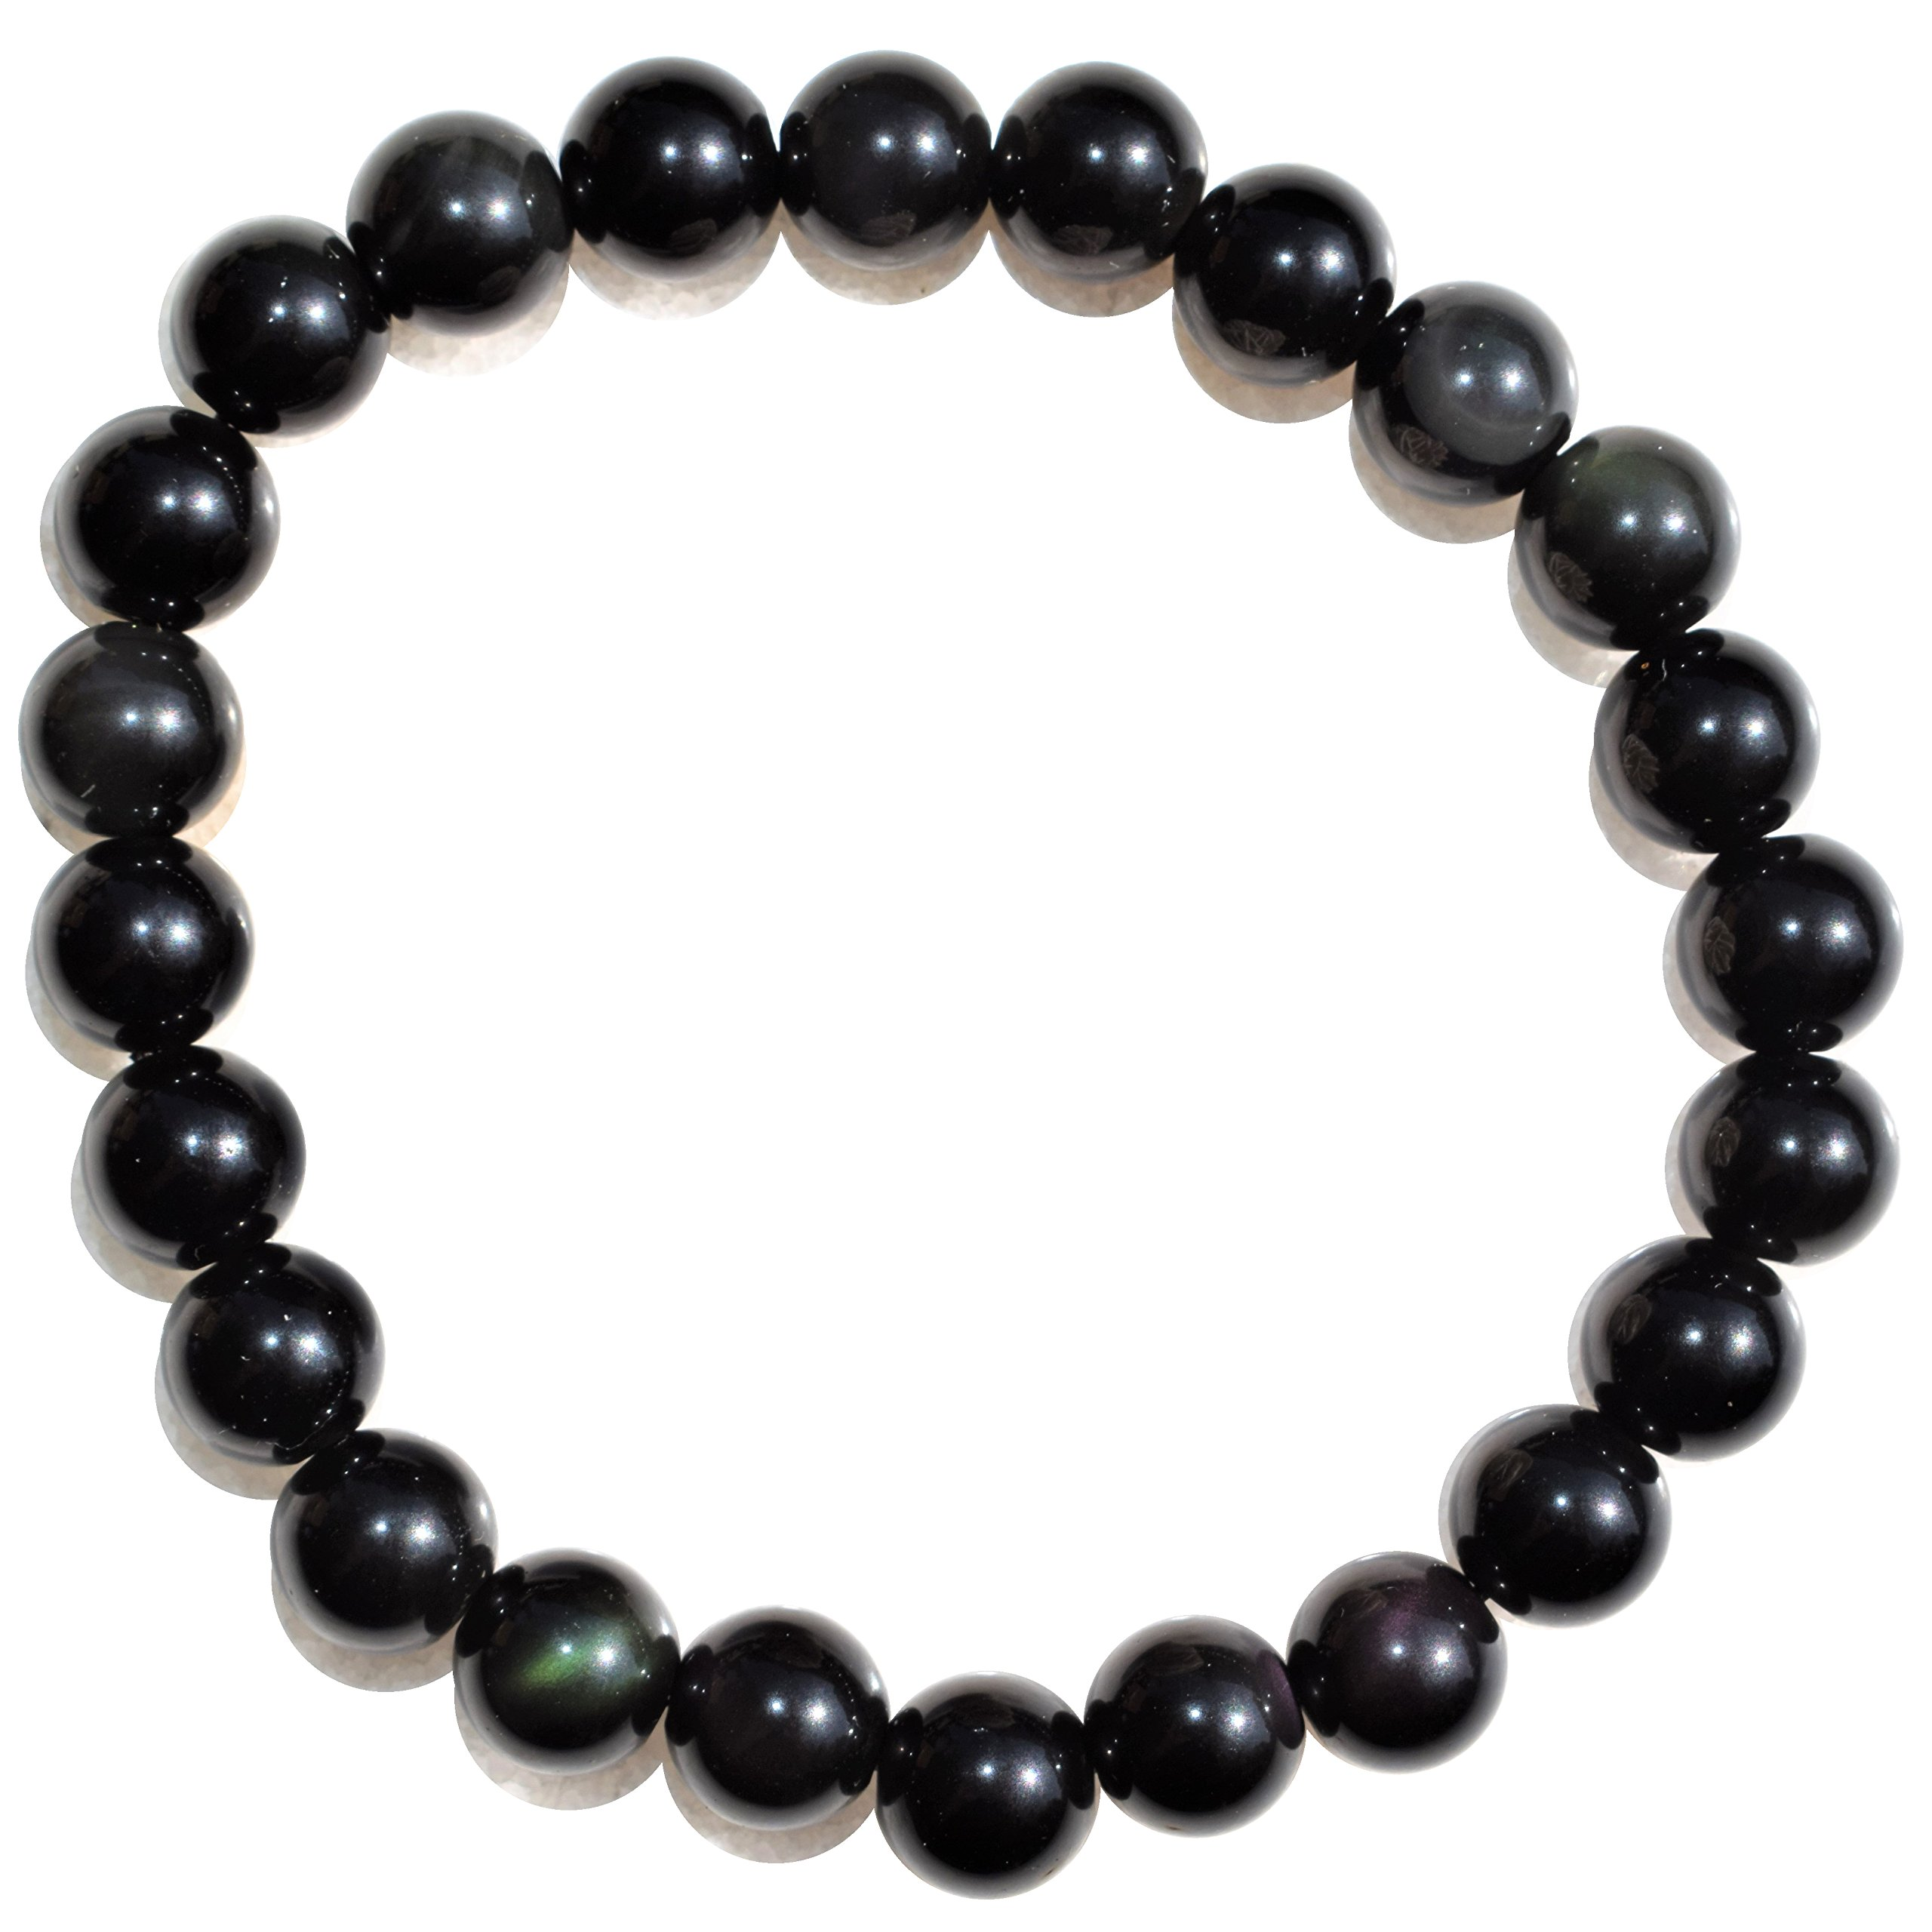 CHARGED Premium 7'' Gold Sheen Rainbow Obsidian Crystal 8mm Bead Bracelet Tumble Stretchy by ZENERGY GEMS